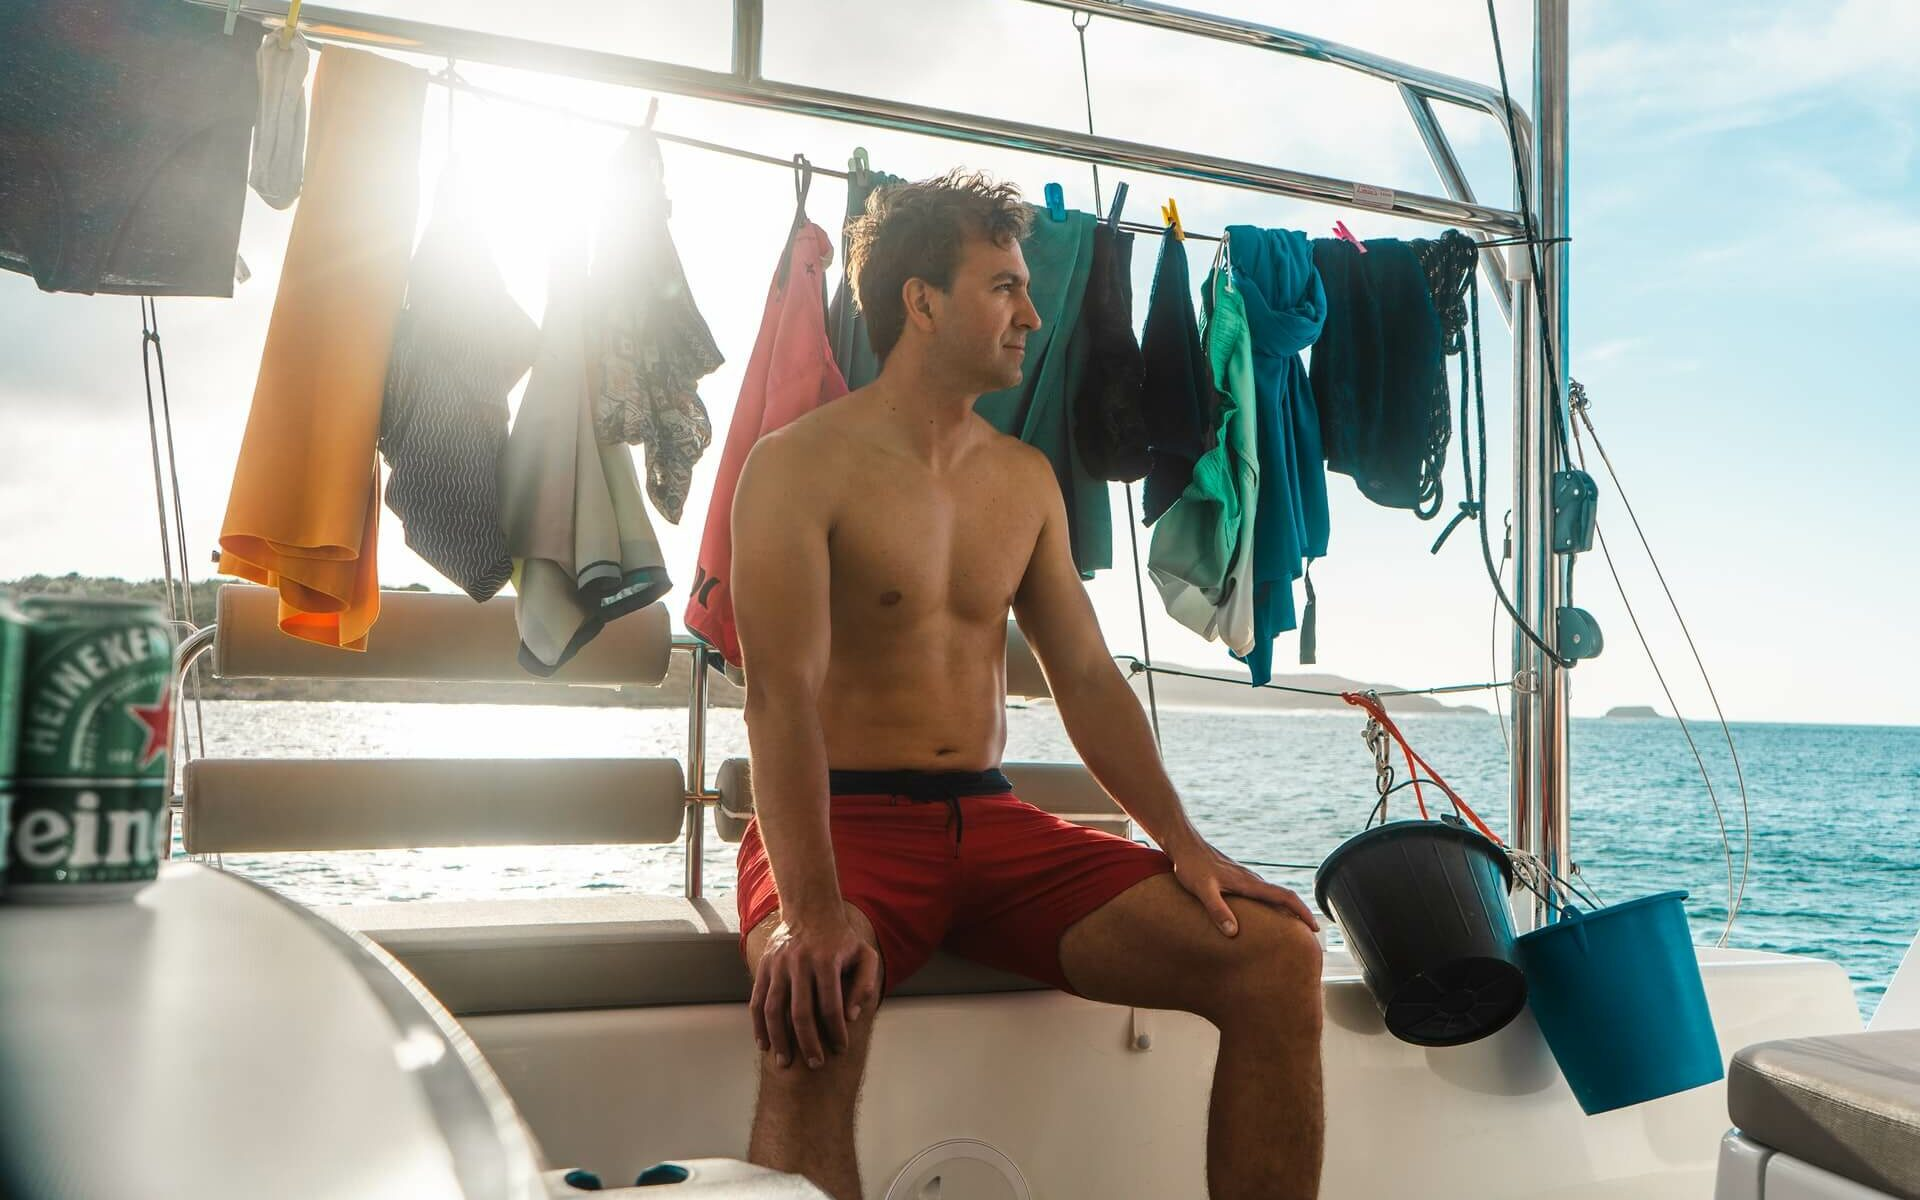 a man sits next to his hanging laundry while living on a boat